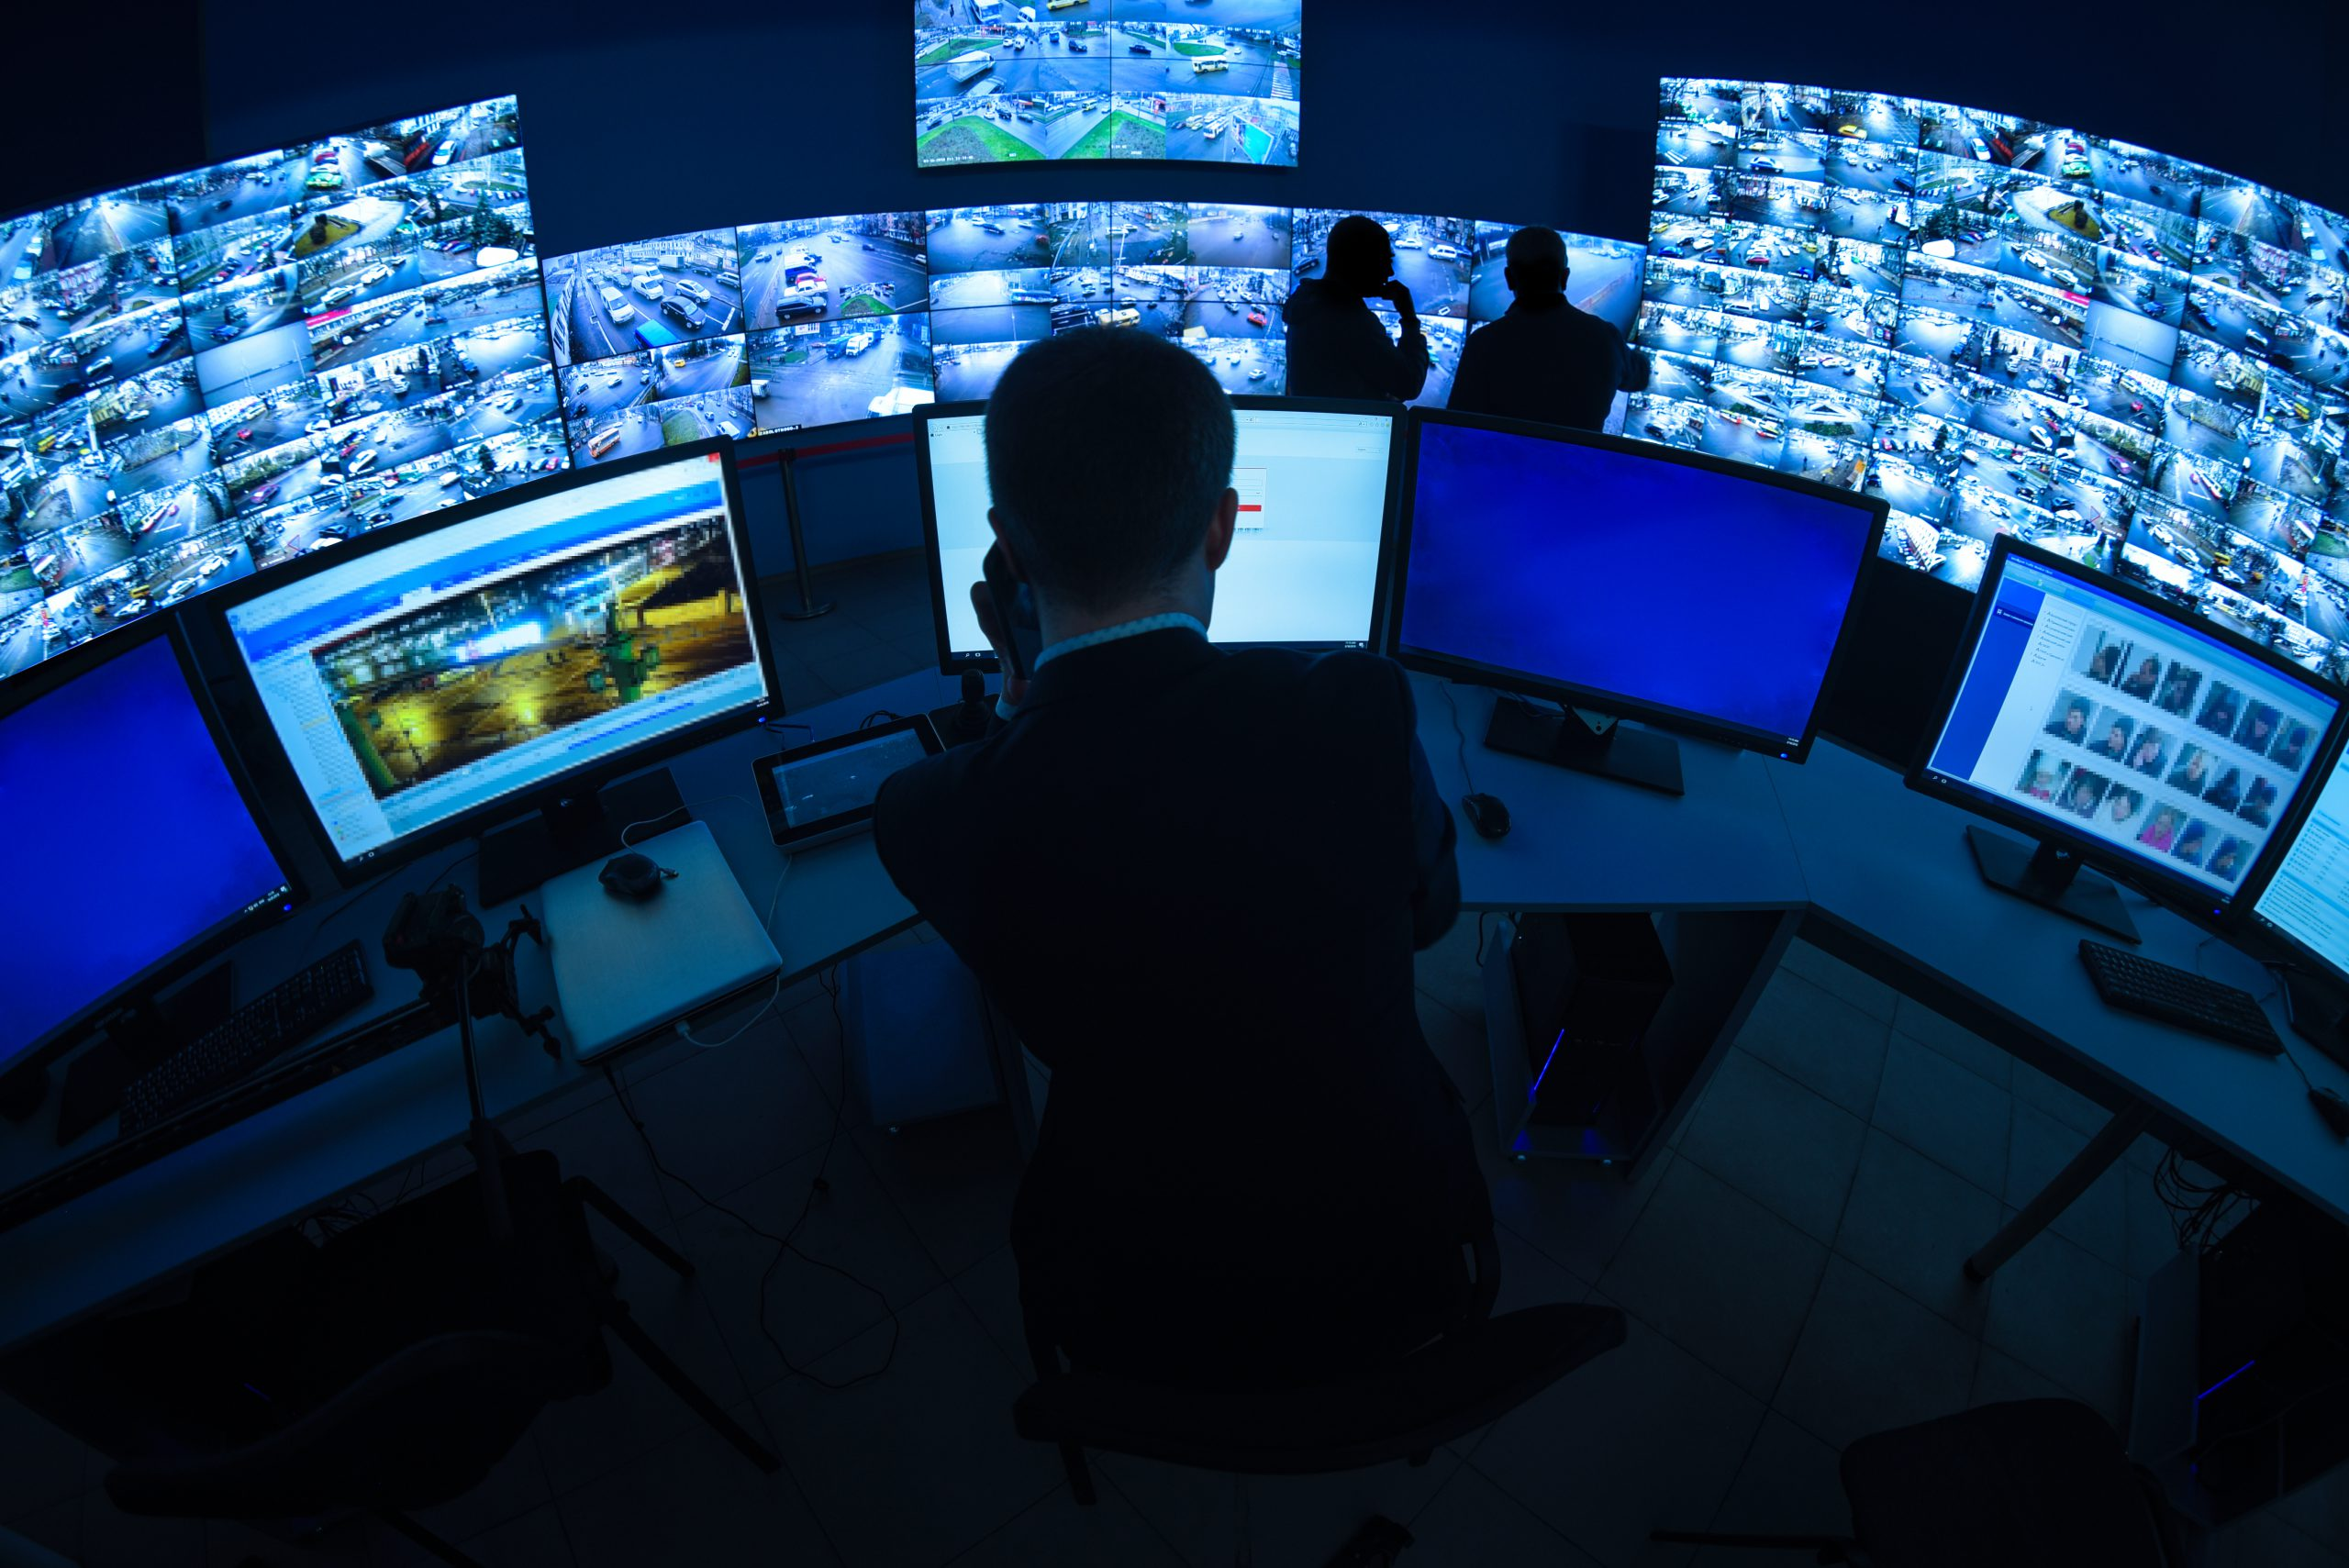 Surveillance Footage Software